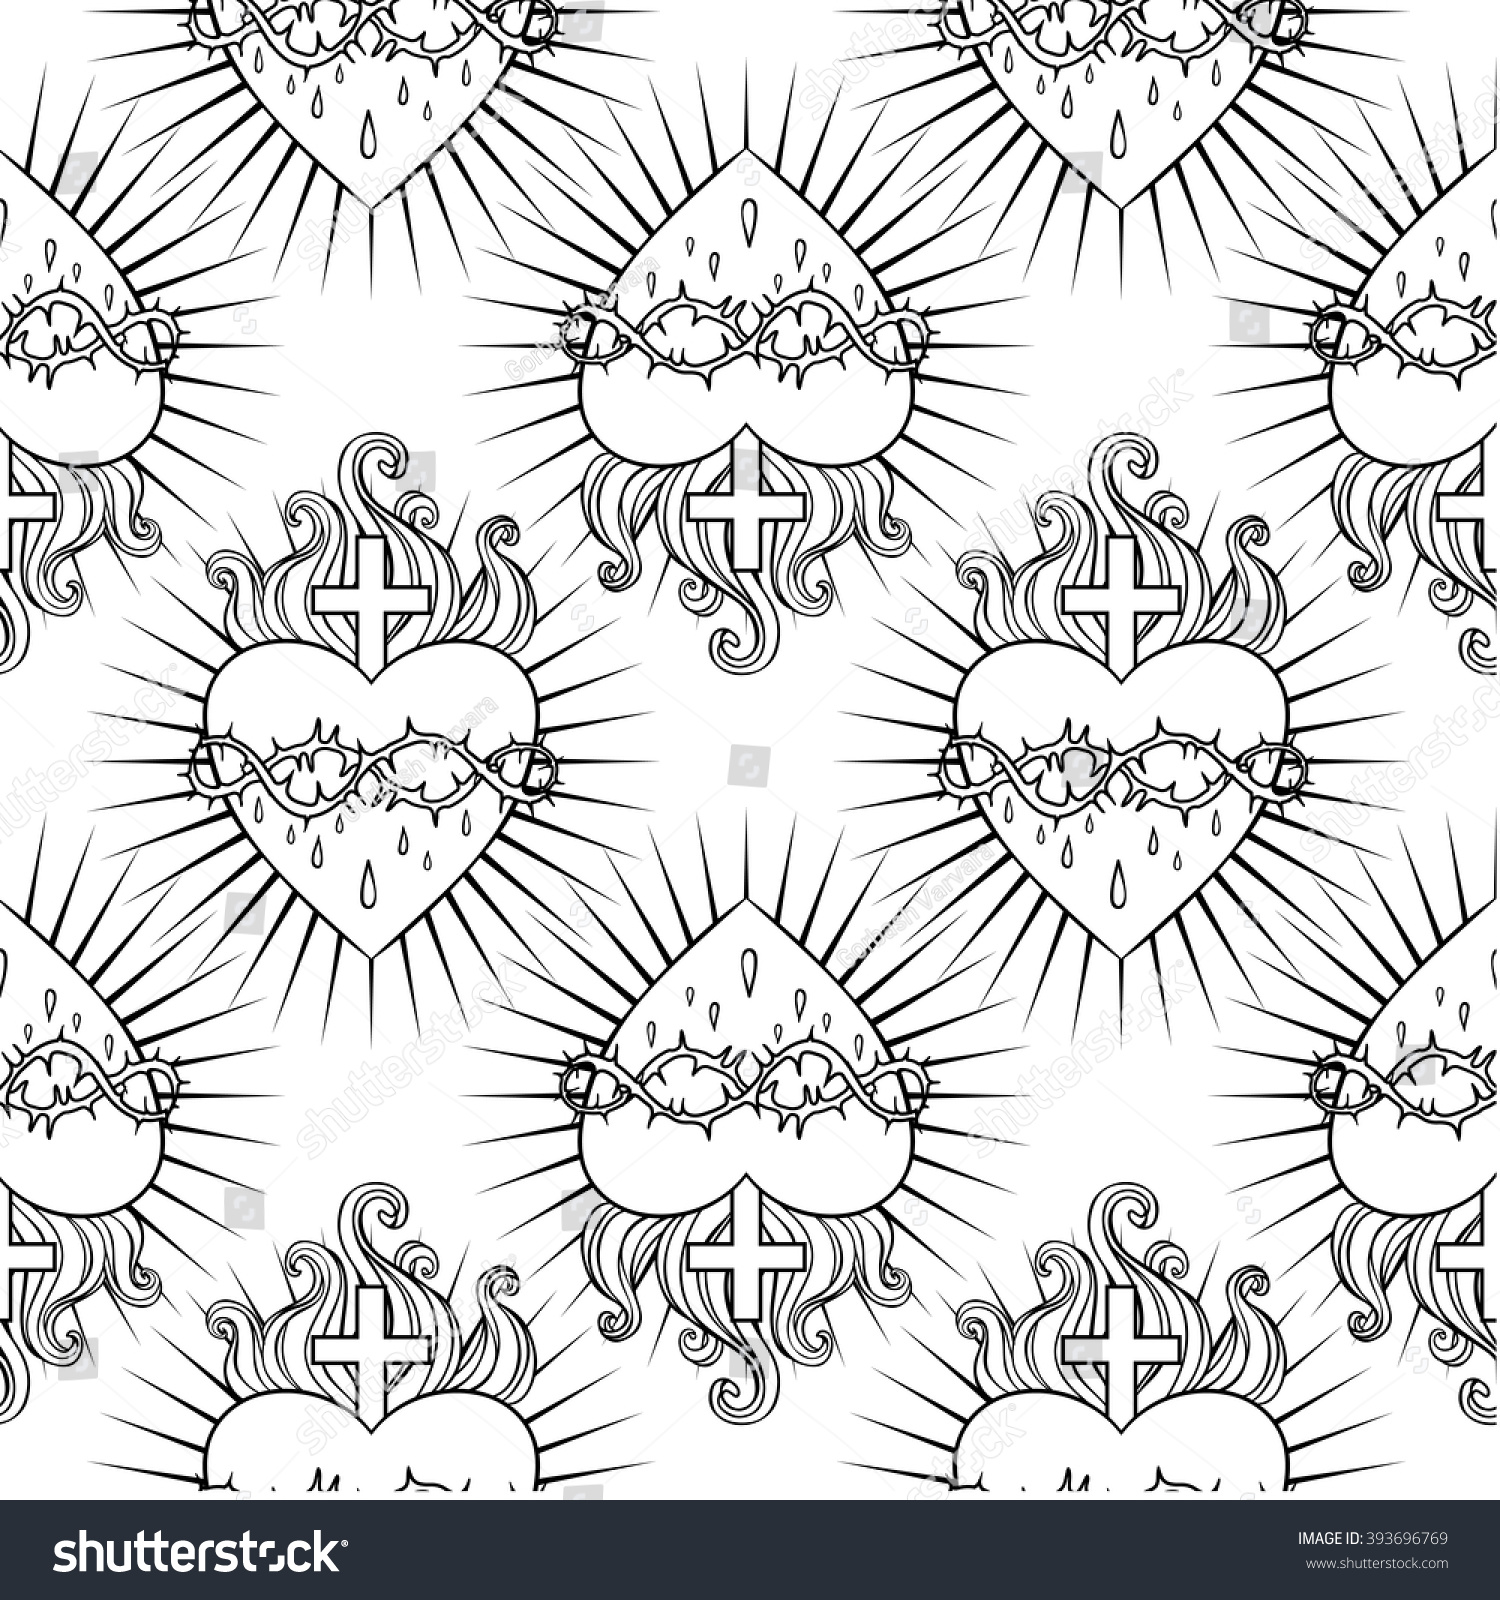 sacred heart of jesus seamless pattern vector illustration trendy vintage style element